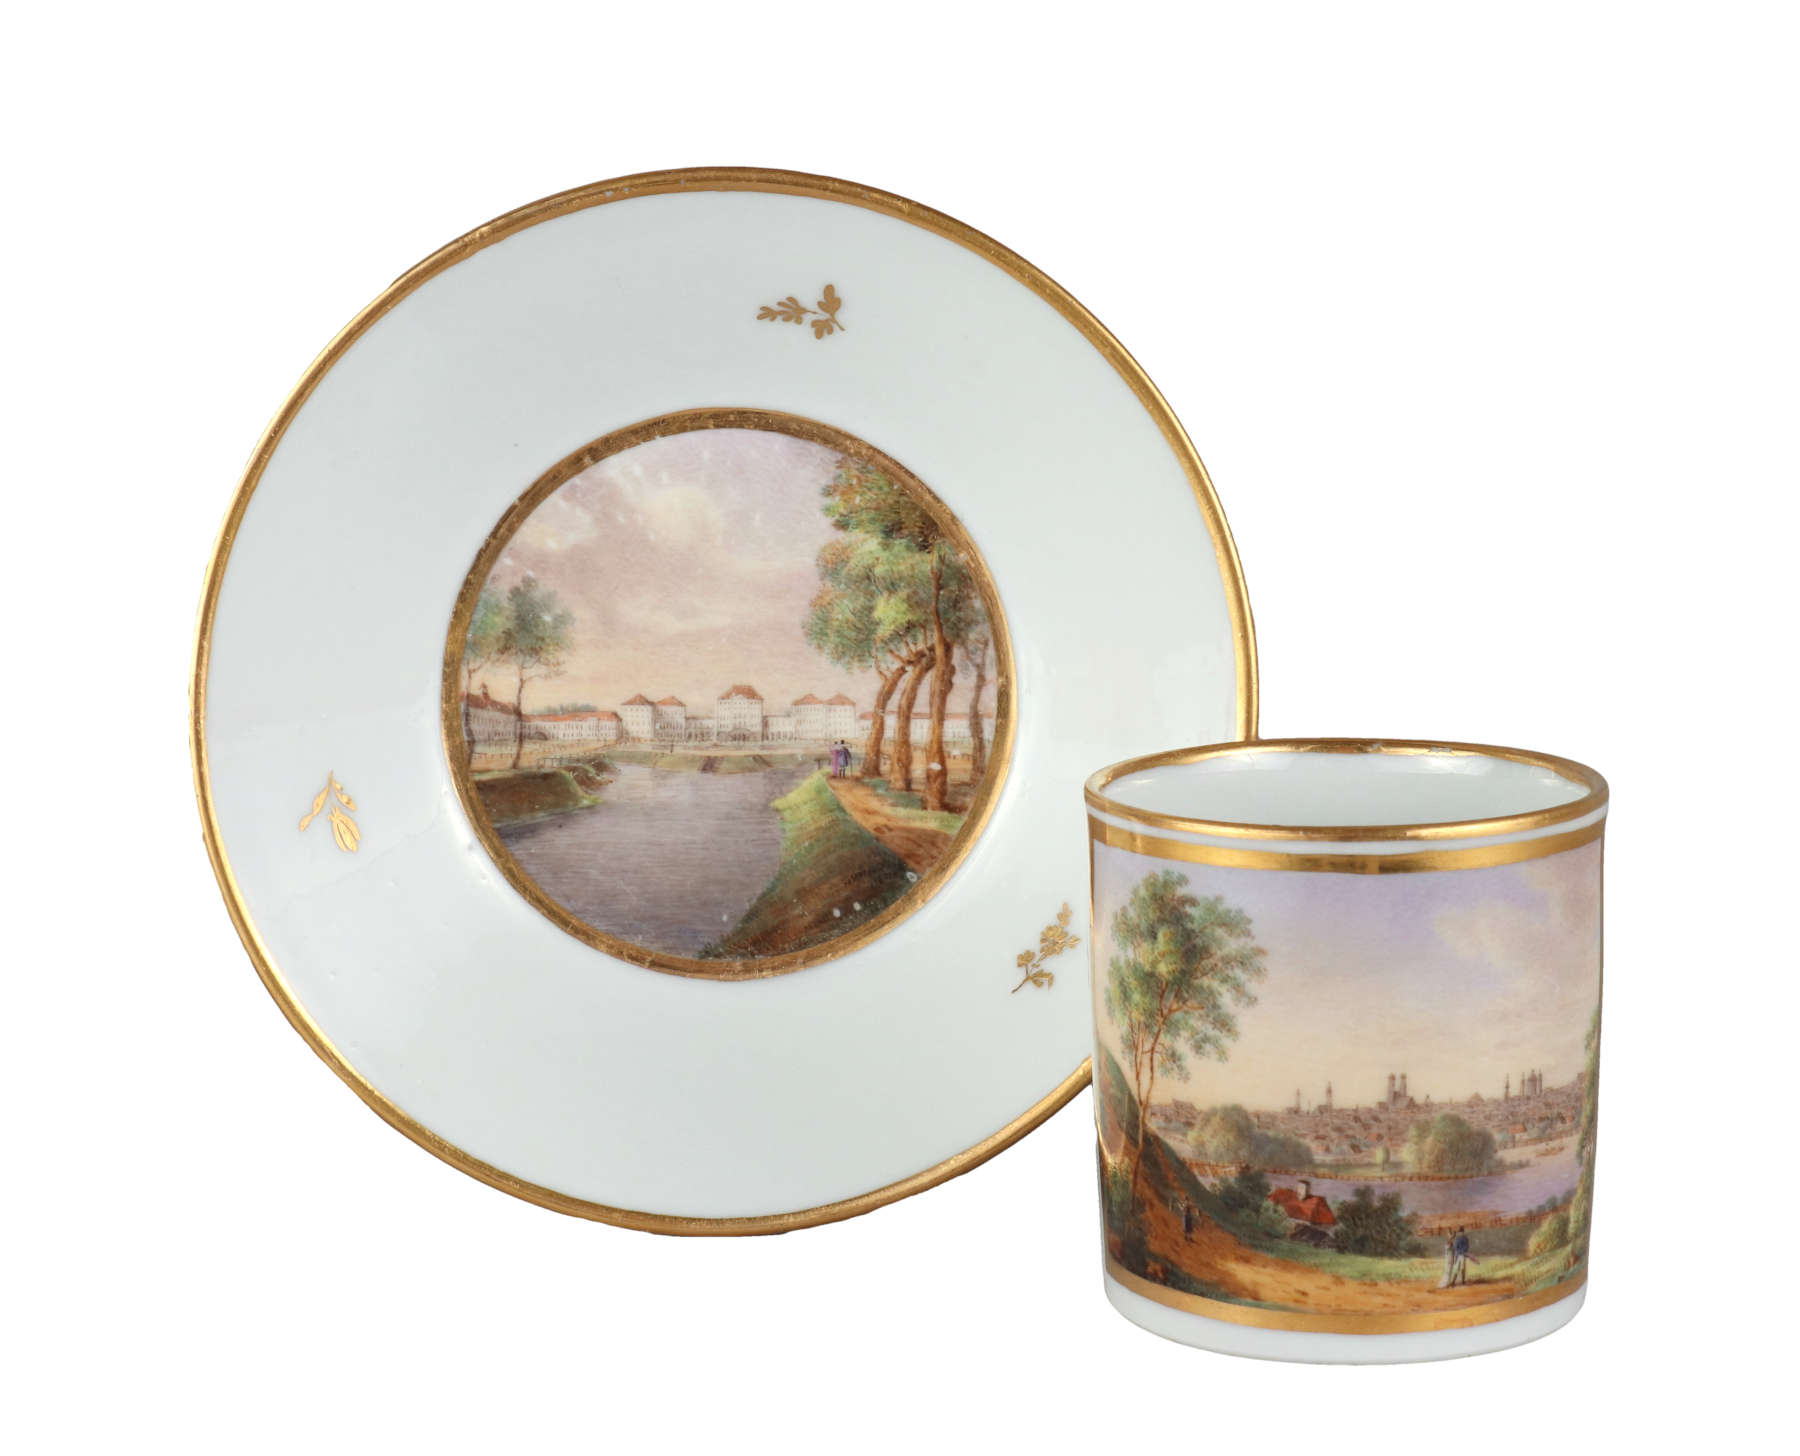 German Porcelain Topographical Cup and Saucer, c. 1800